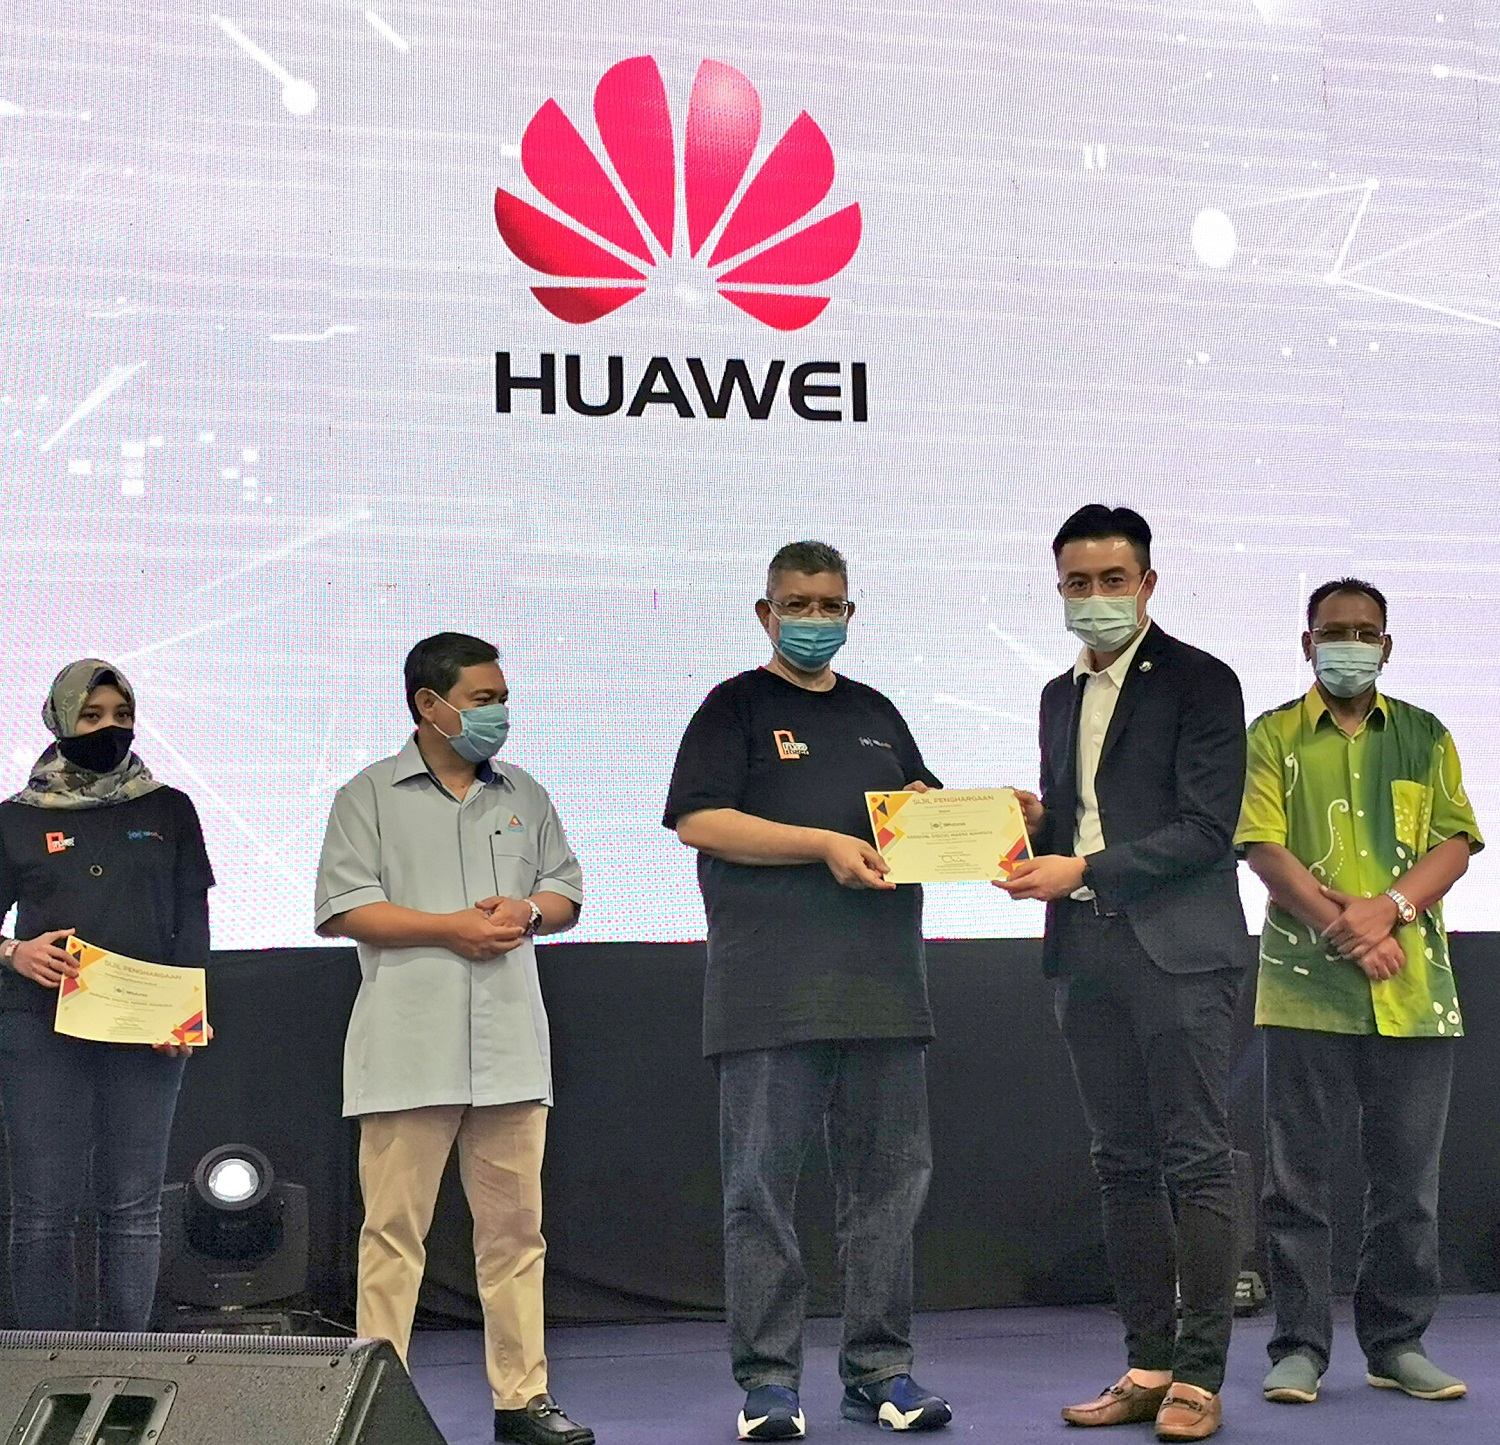 Huawei Malaysia Launches TECH4ALL Remote Education to Bridge Digital Divide